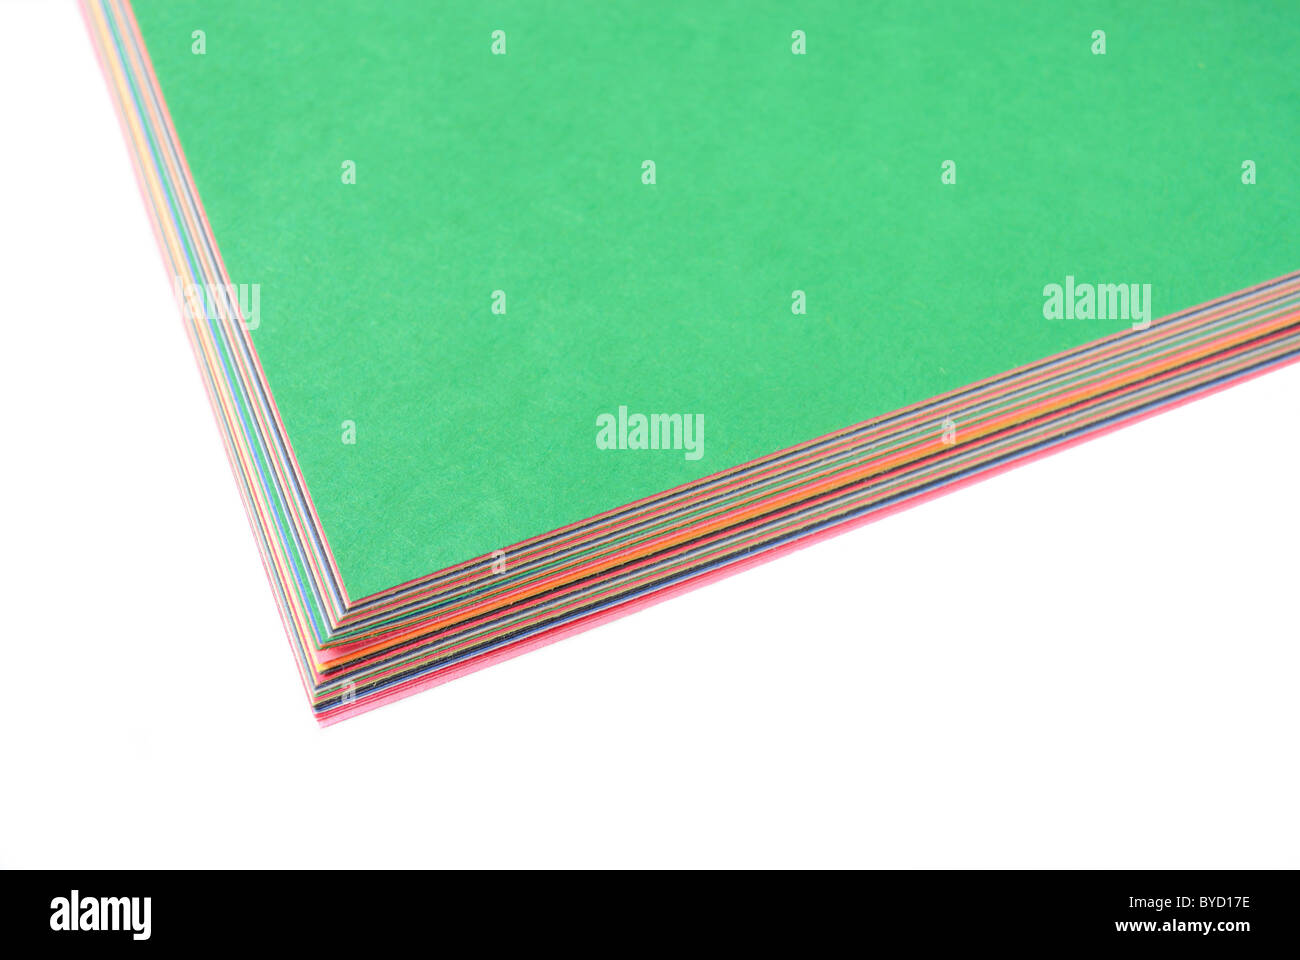 Construction paper for art projects. - Stock Image